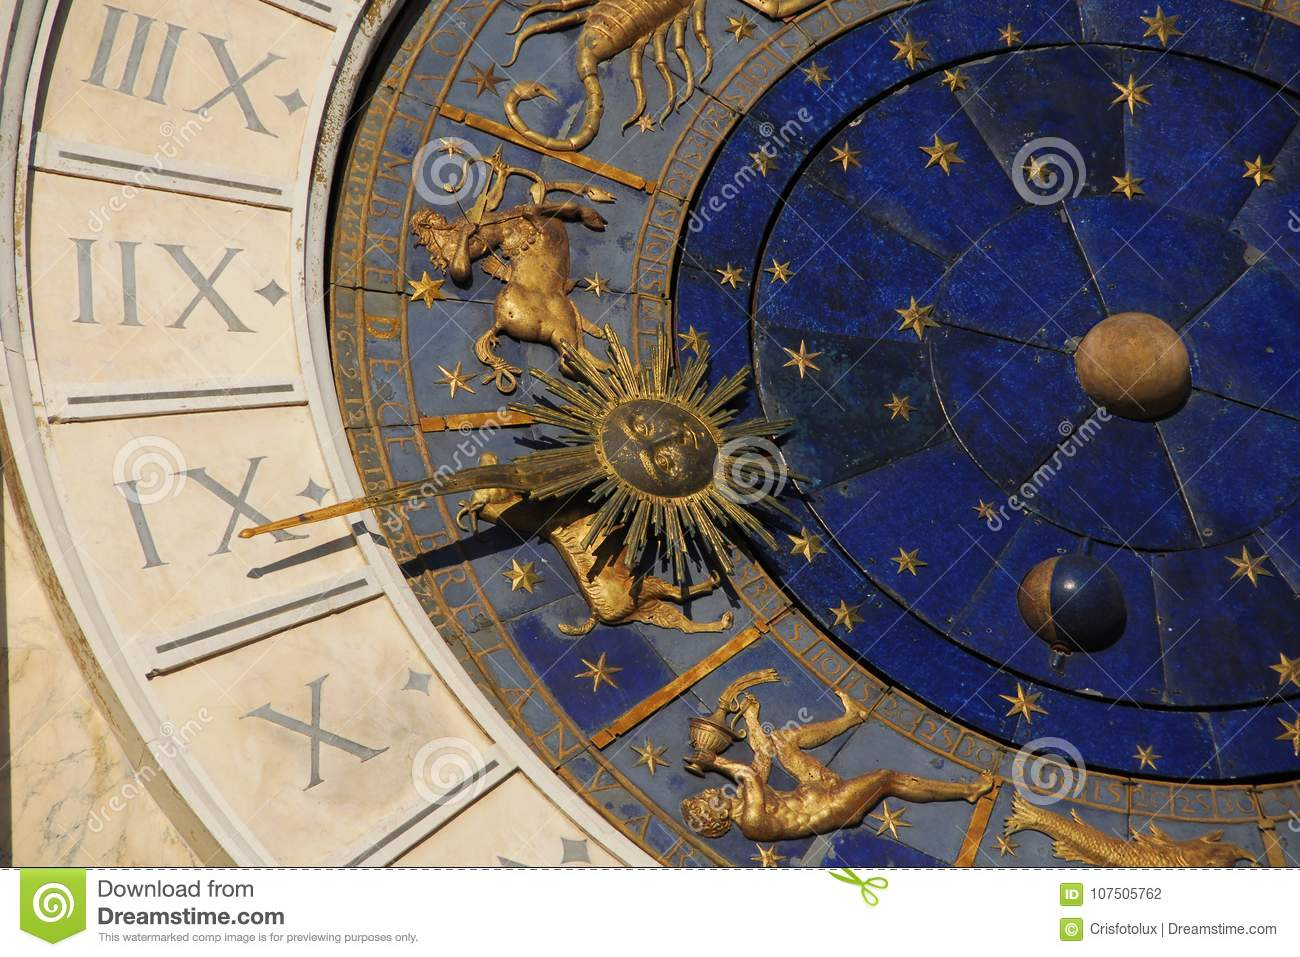 Ancient Time, Astrology And Horoscope Stock Photo - Image of centaur